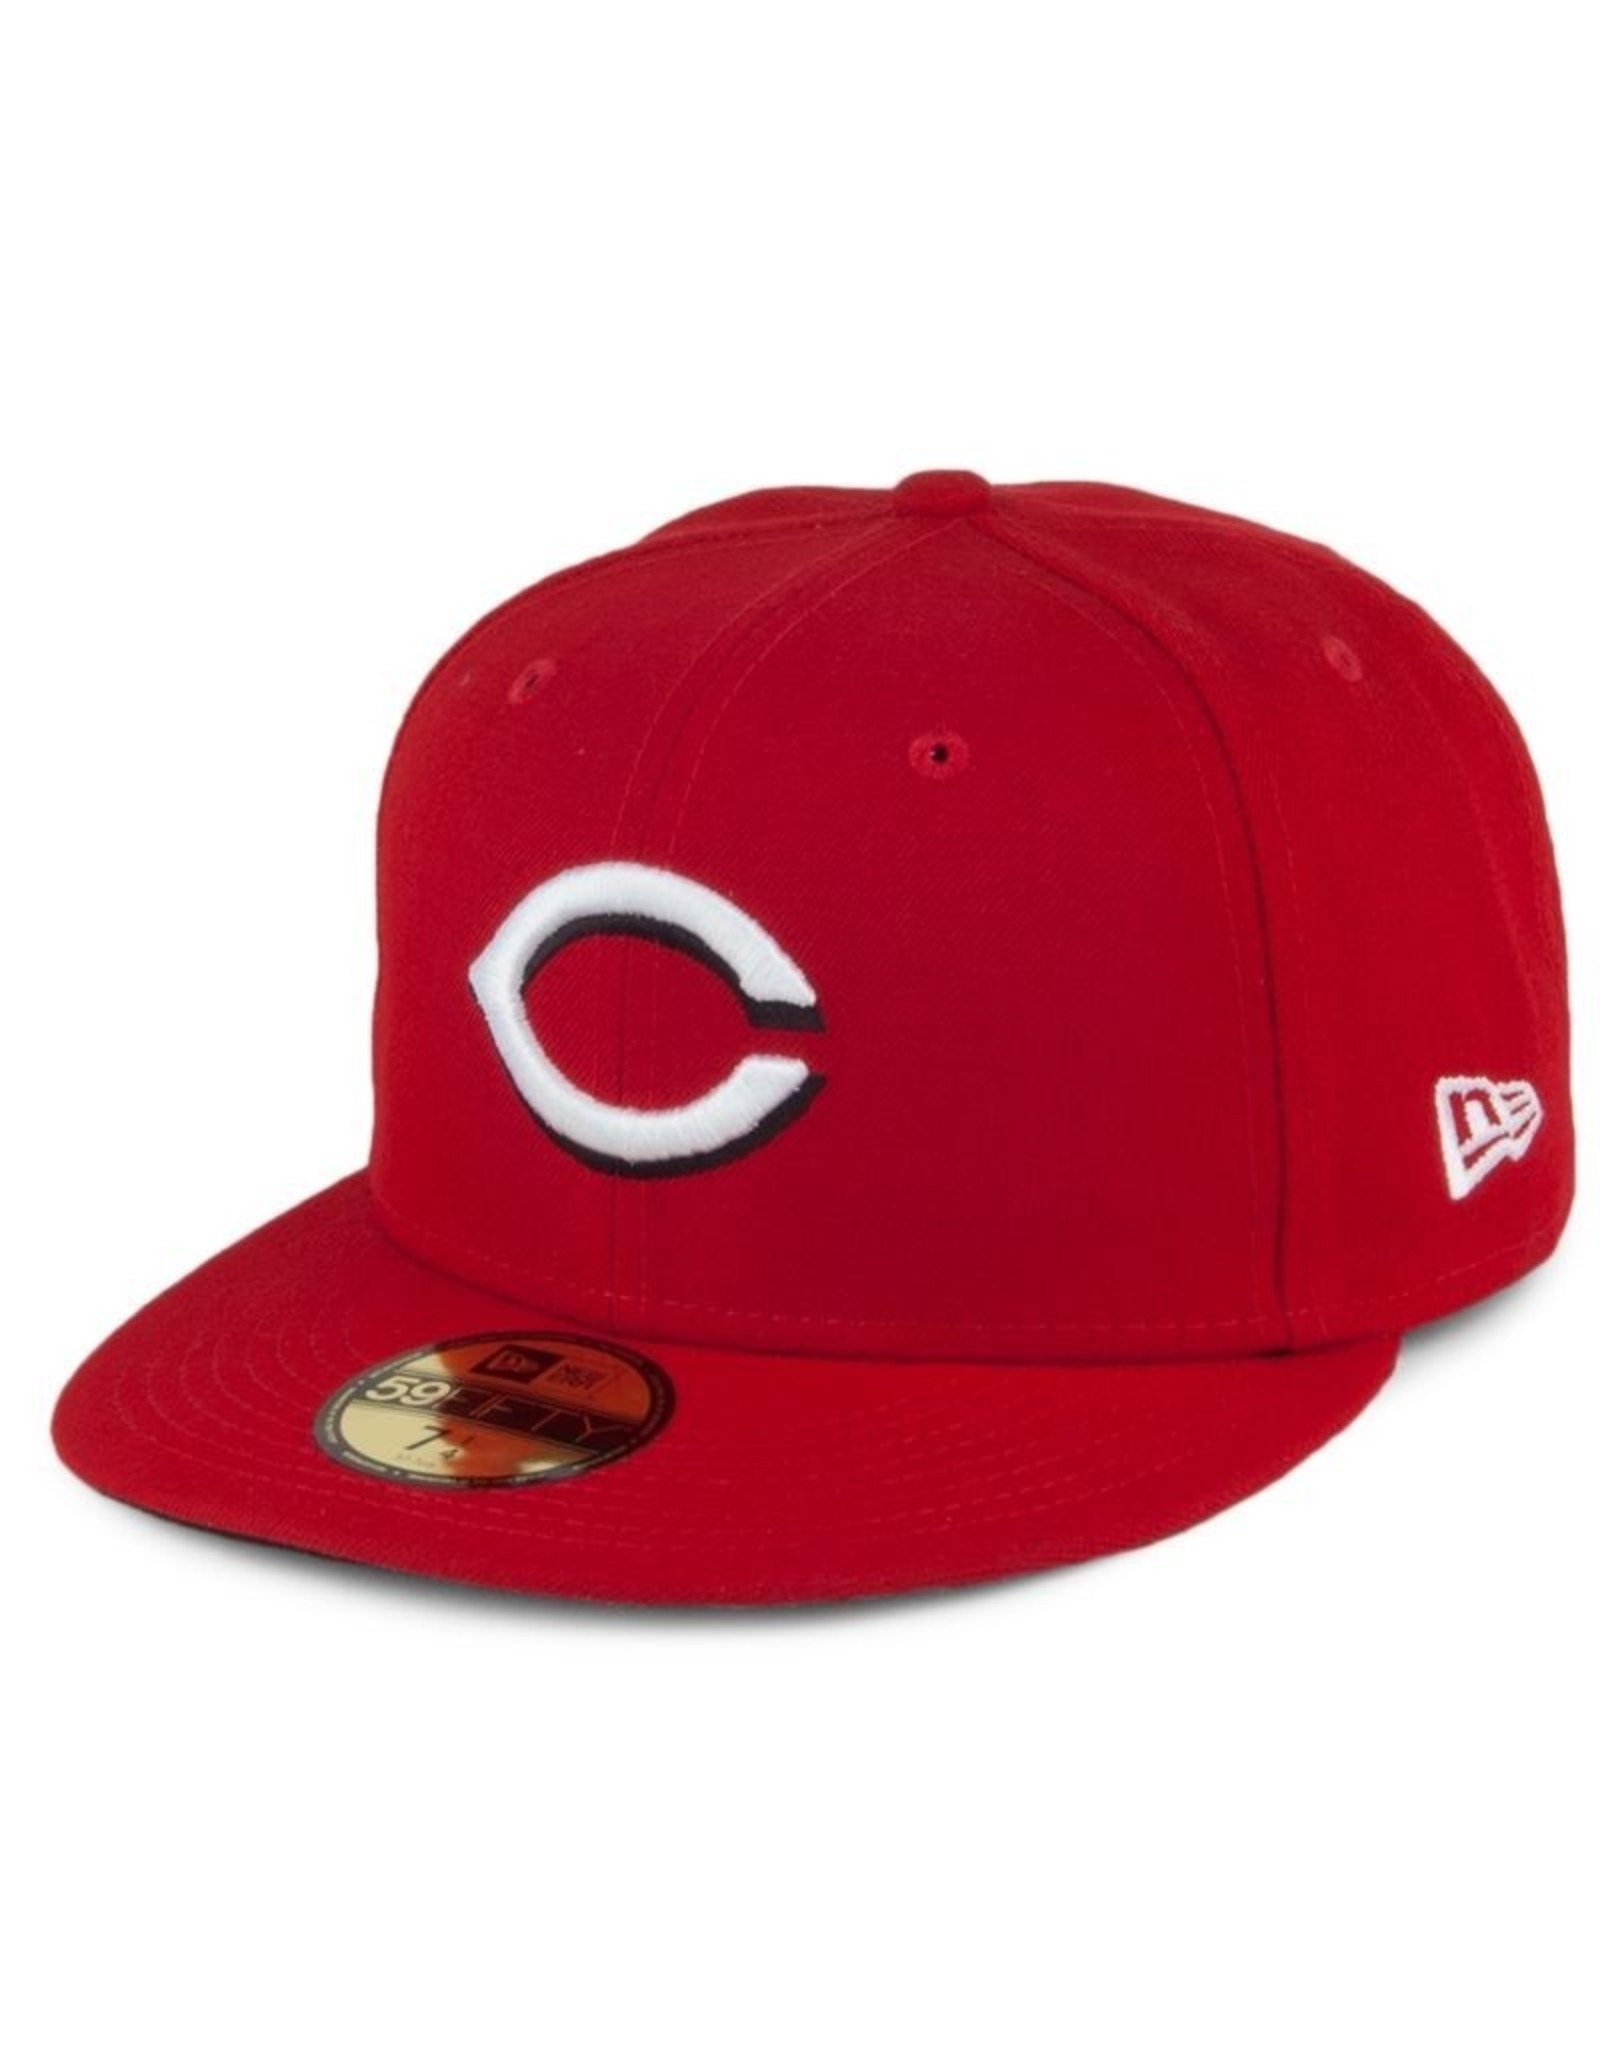 New Era On-Field Authentic 59FIFTY Home Hat Cincinnati Reds Red